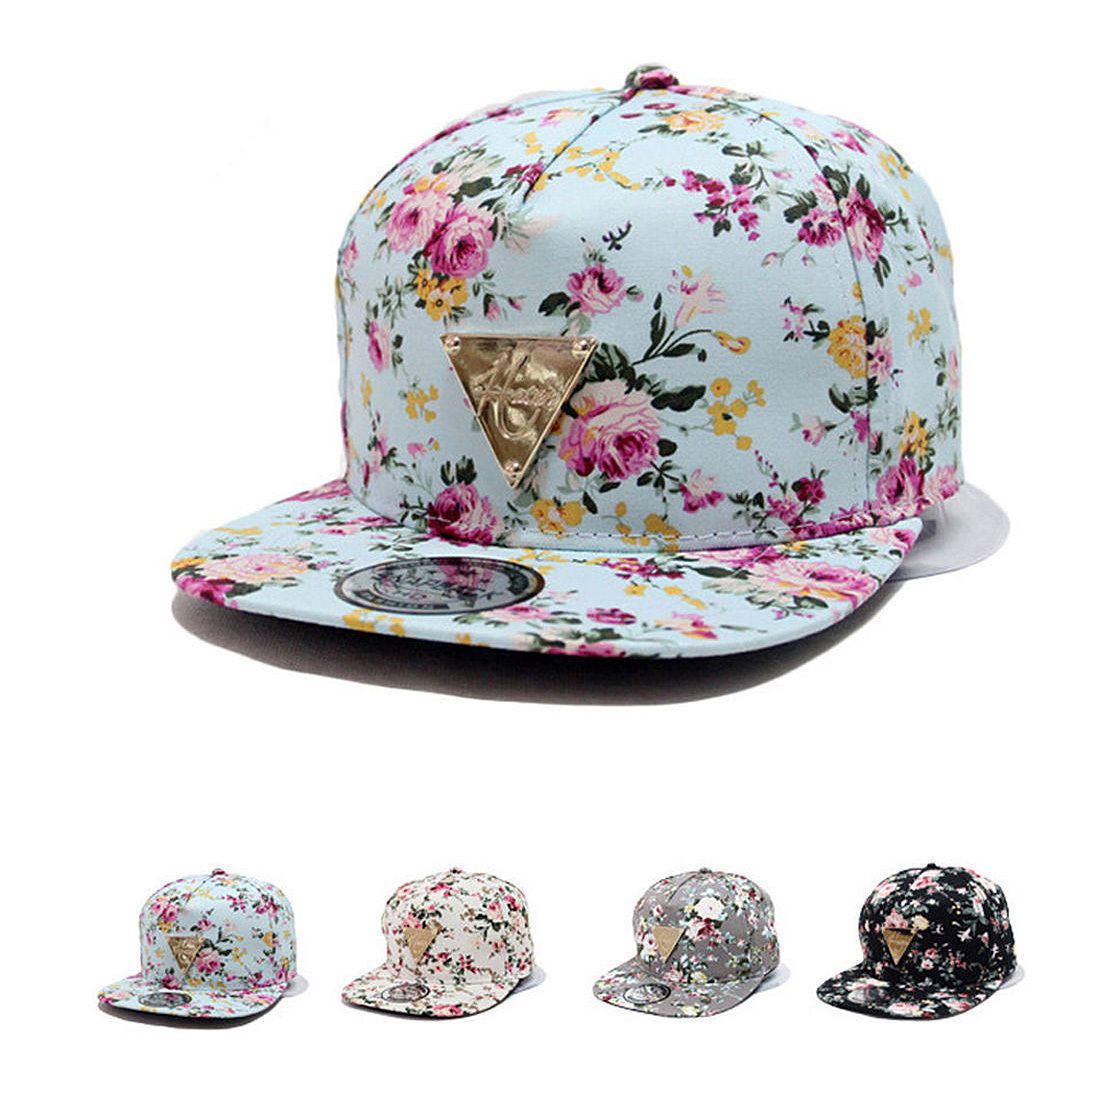 Floral Flower Hip Hop Snapback Hats Flat Adjustable Baseball Cap unisex men women m embroidery snapback hats hip hop adjustable baseball cap hat